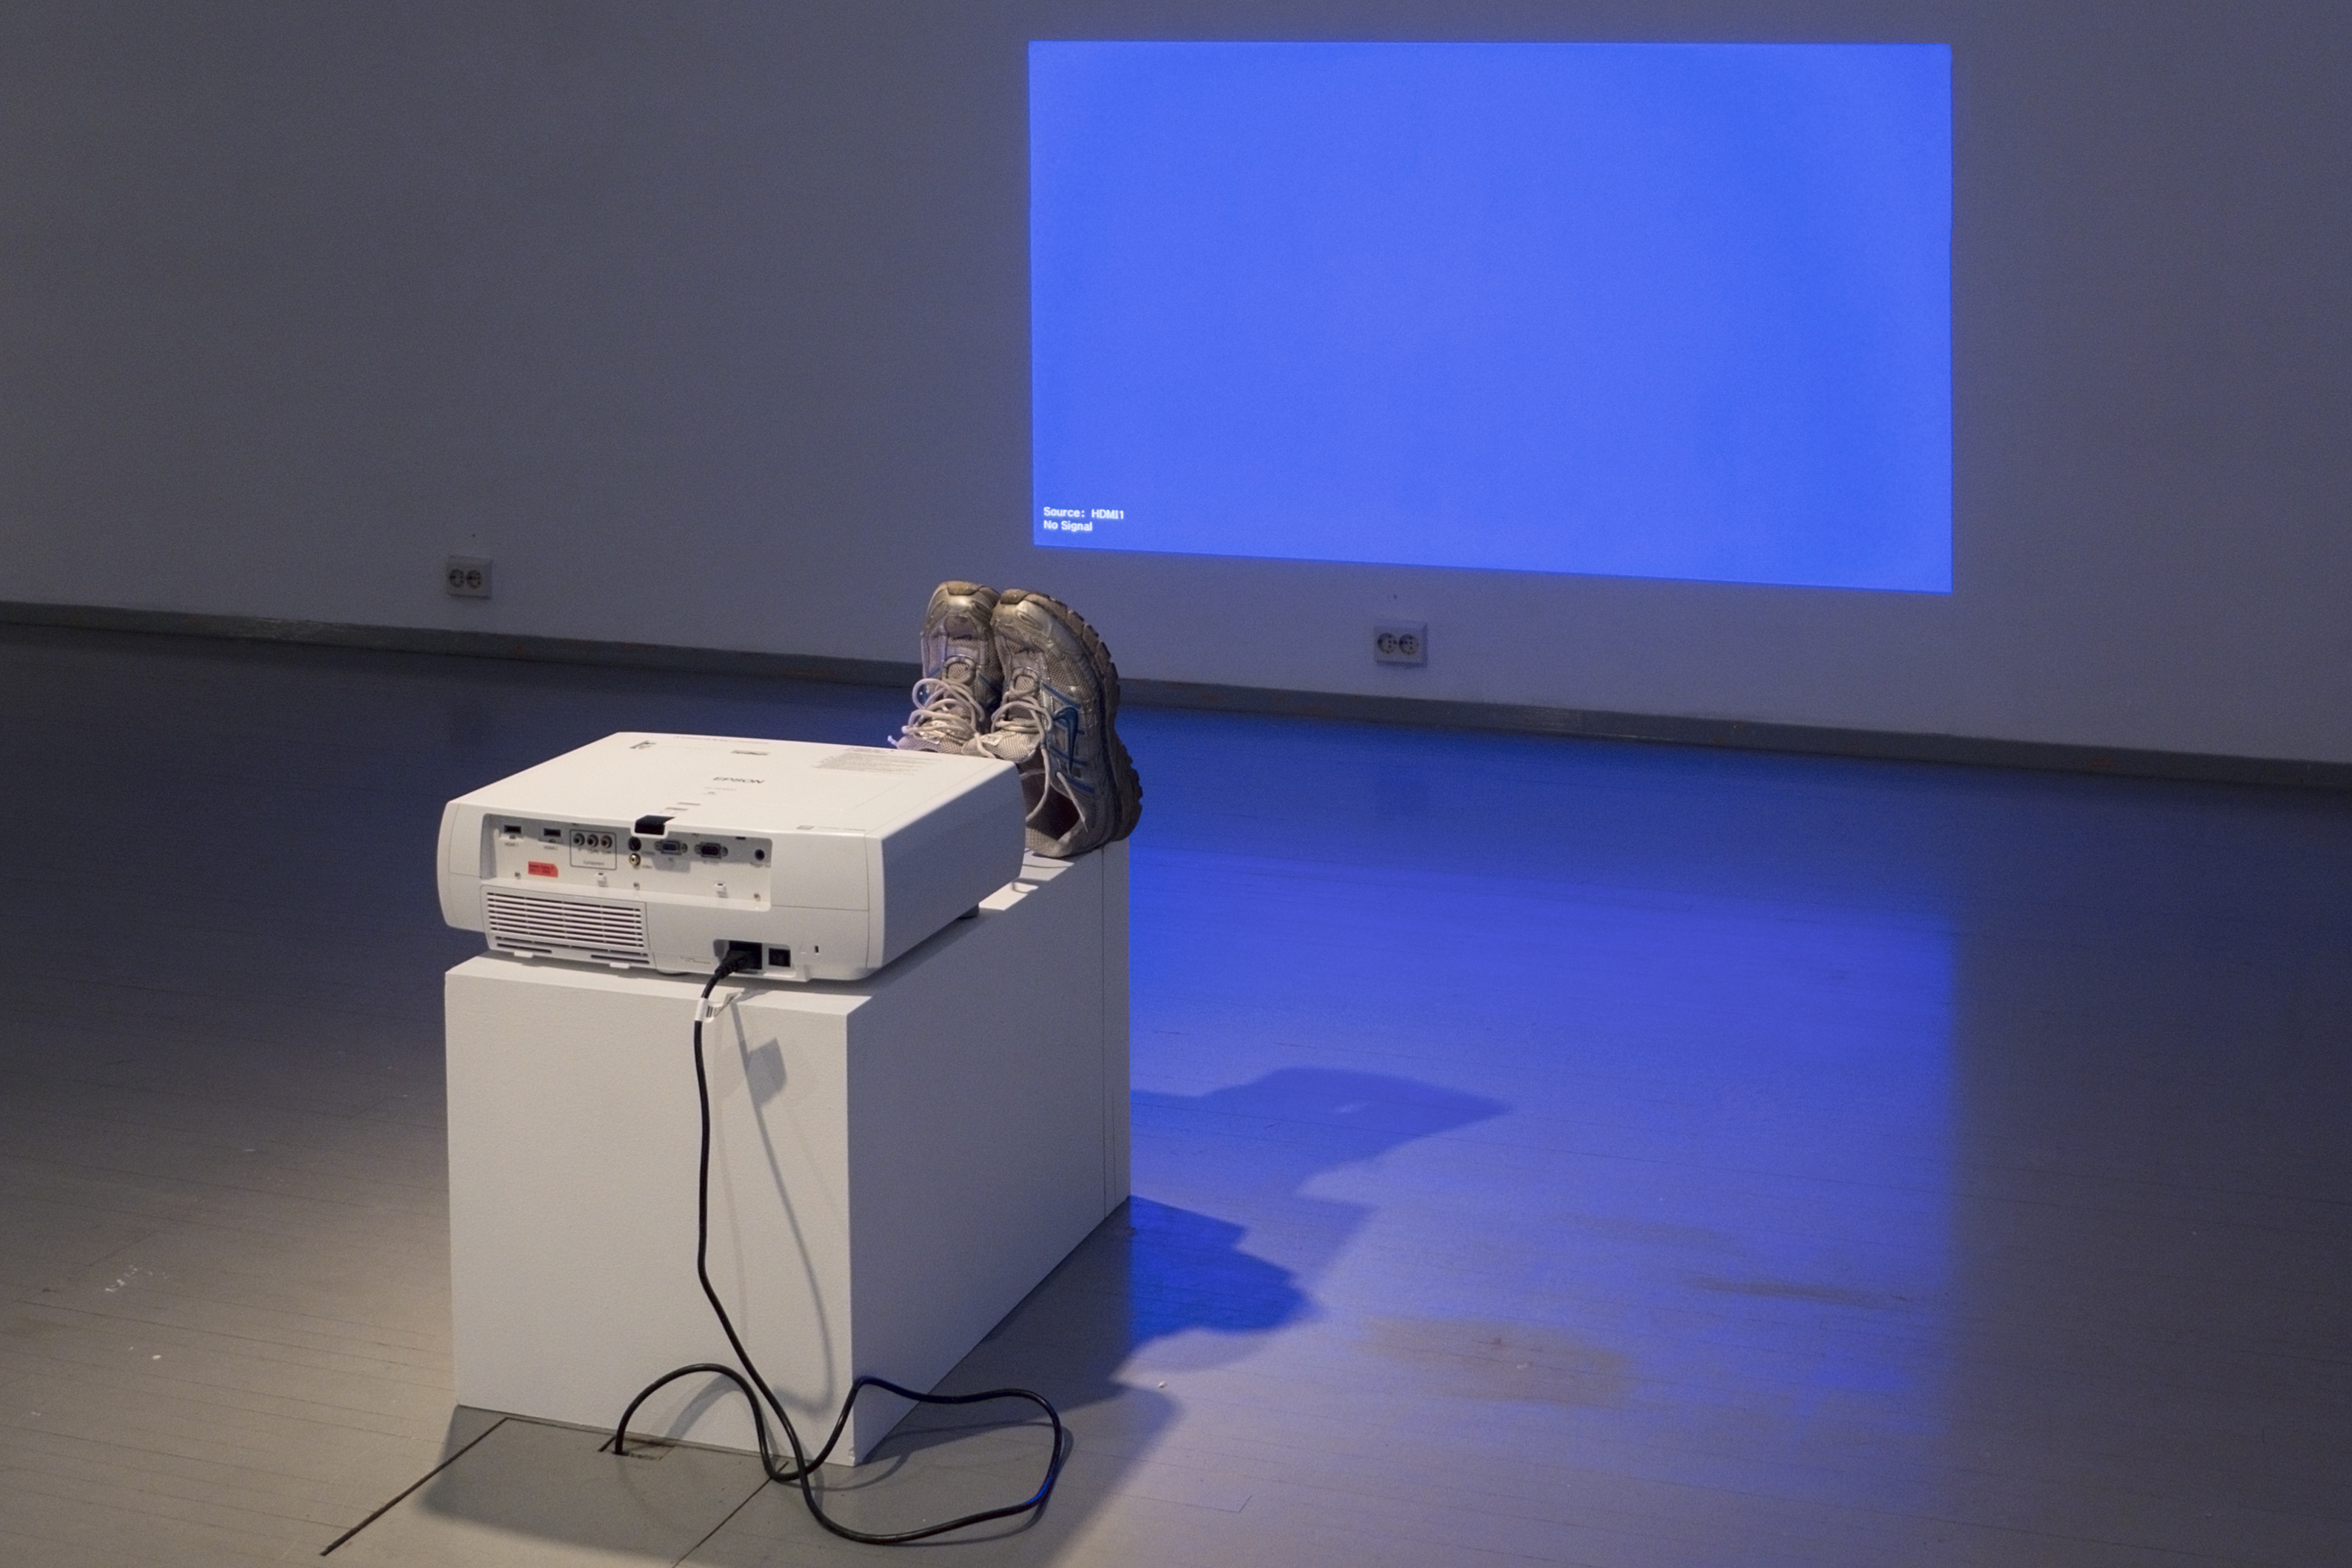 Nestori Syrjälä, 'Shoe Dryer', 2013. Sculpture: Epson EH-TW3200 projector, Nike running shoes, mud